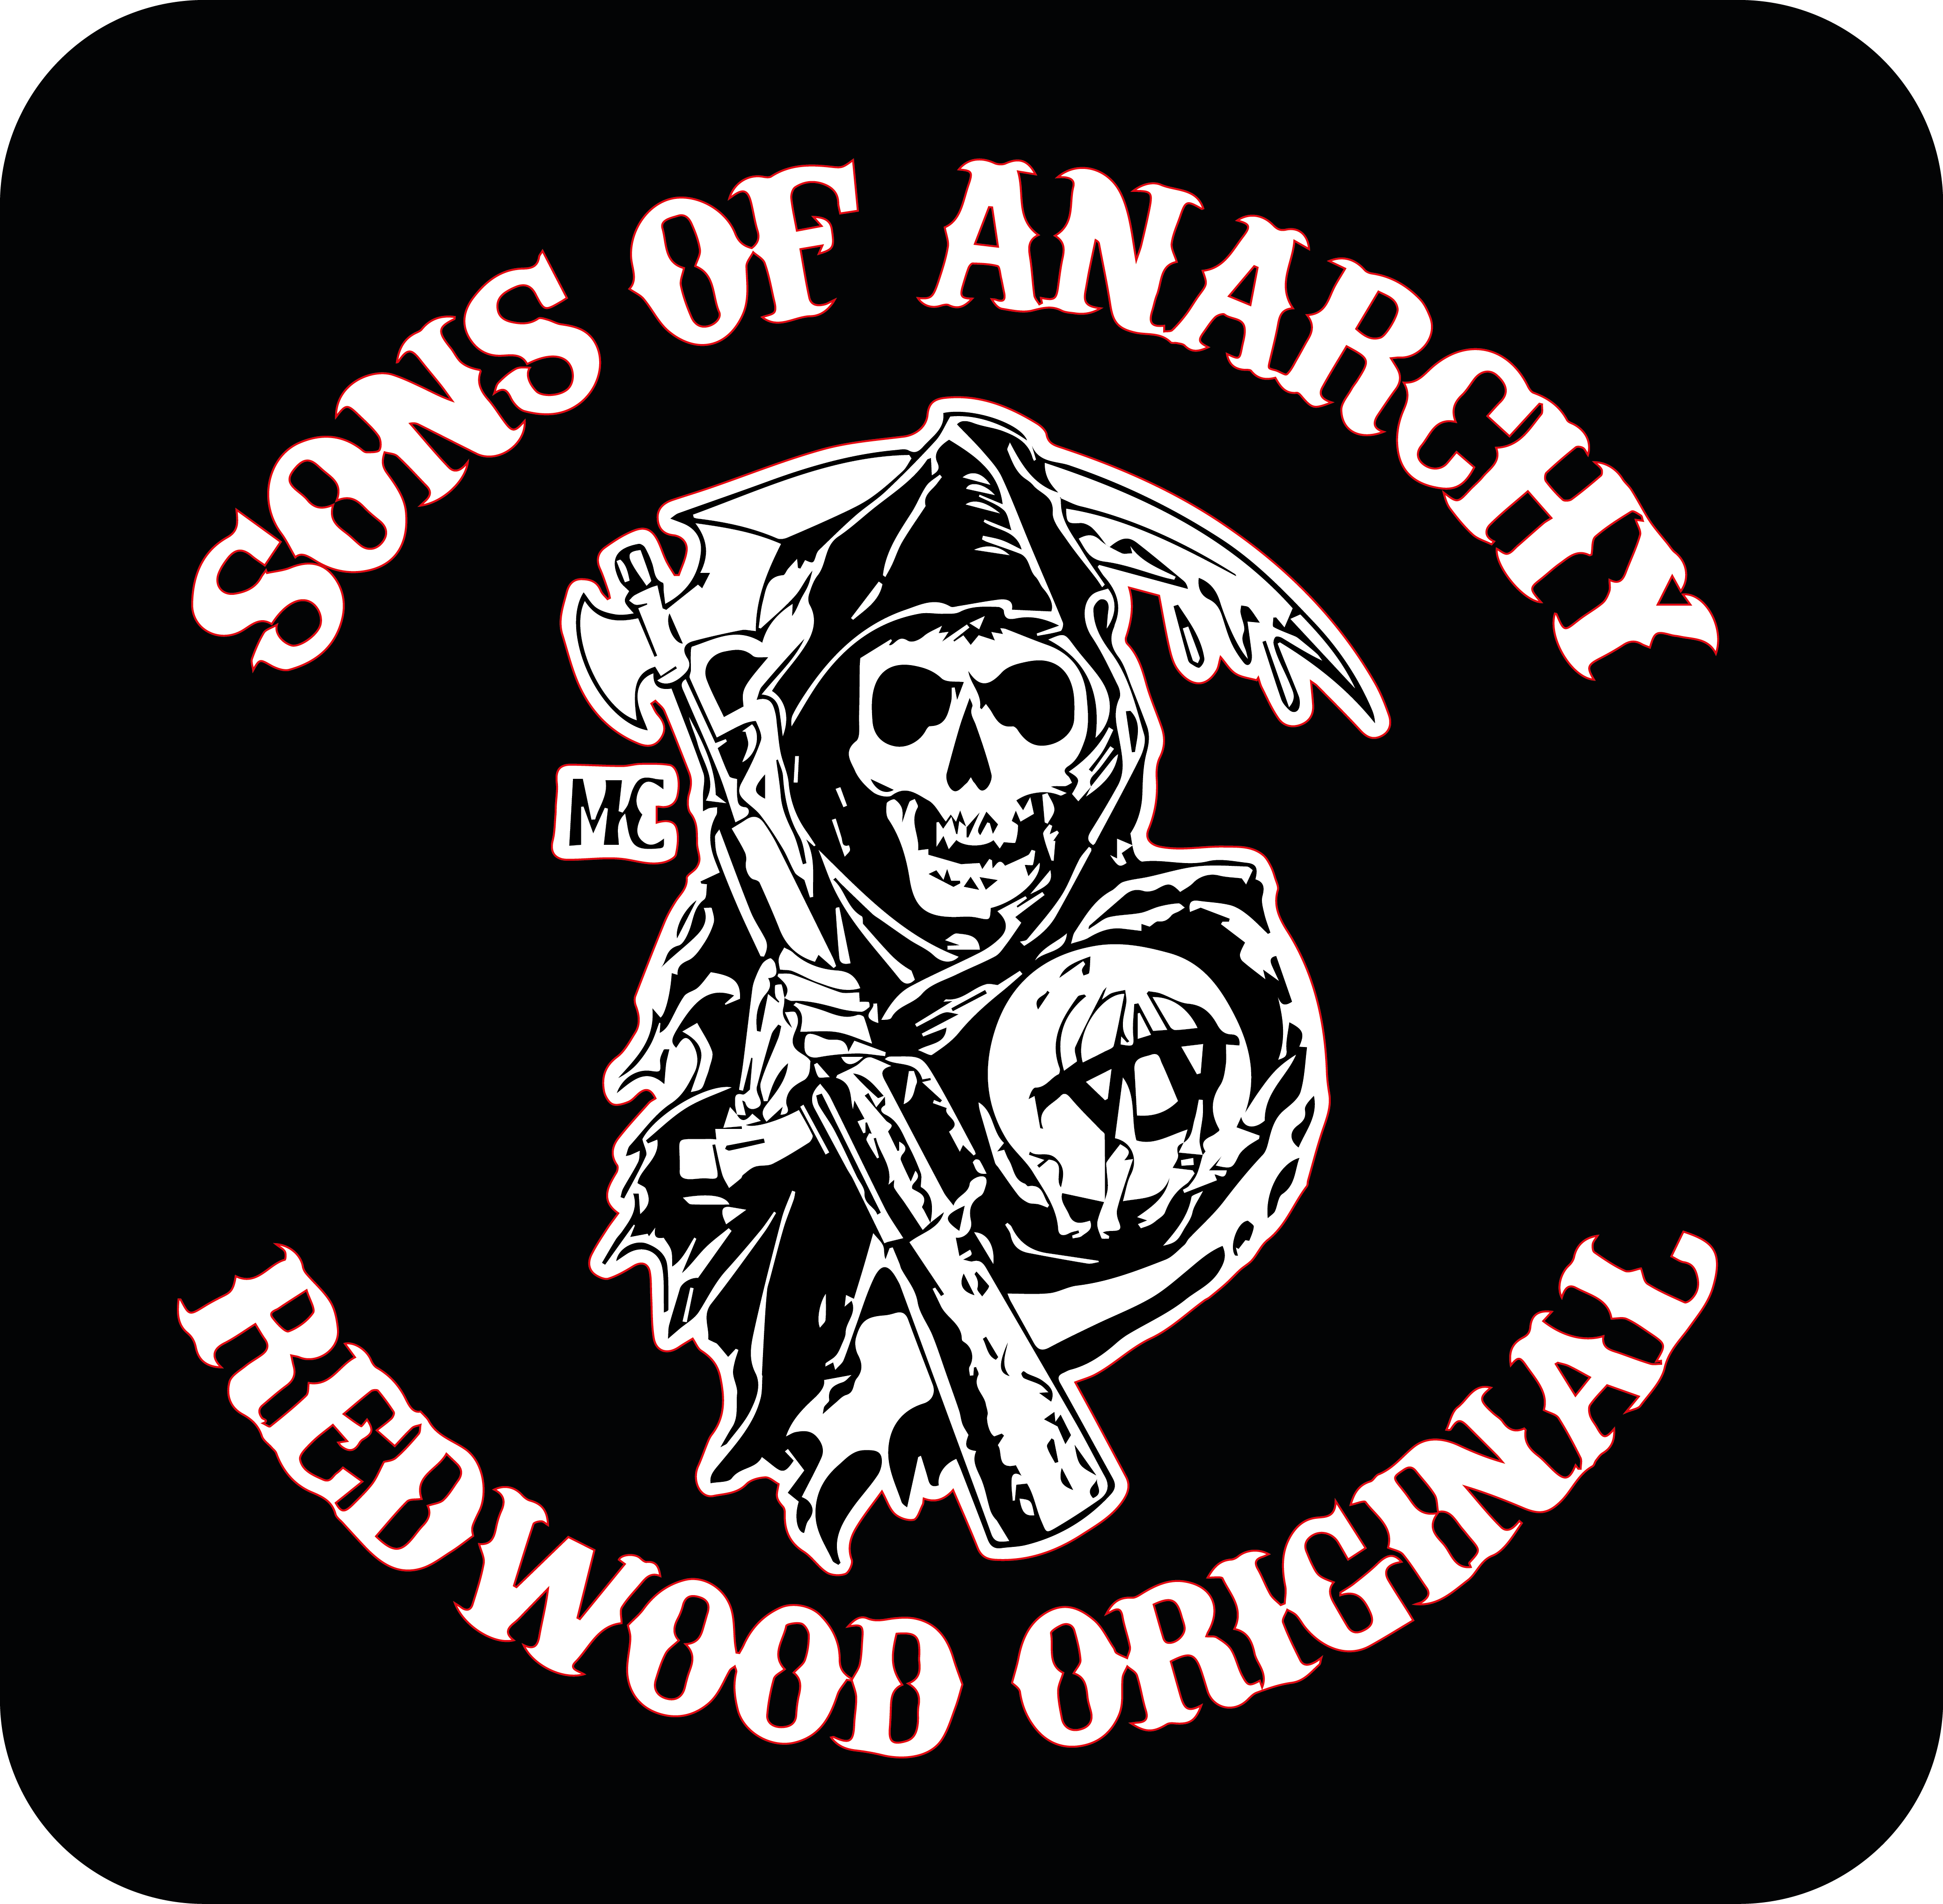 Sons of Anarchy Print and cutt by pmattiasp